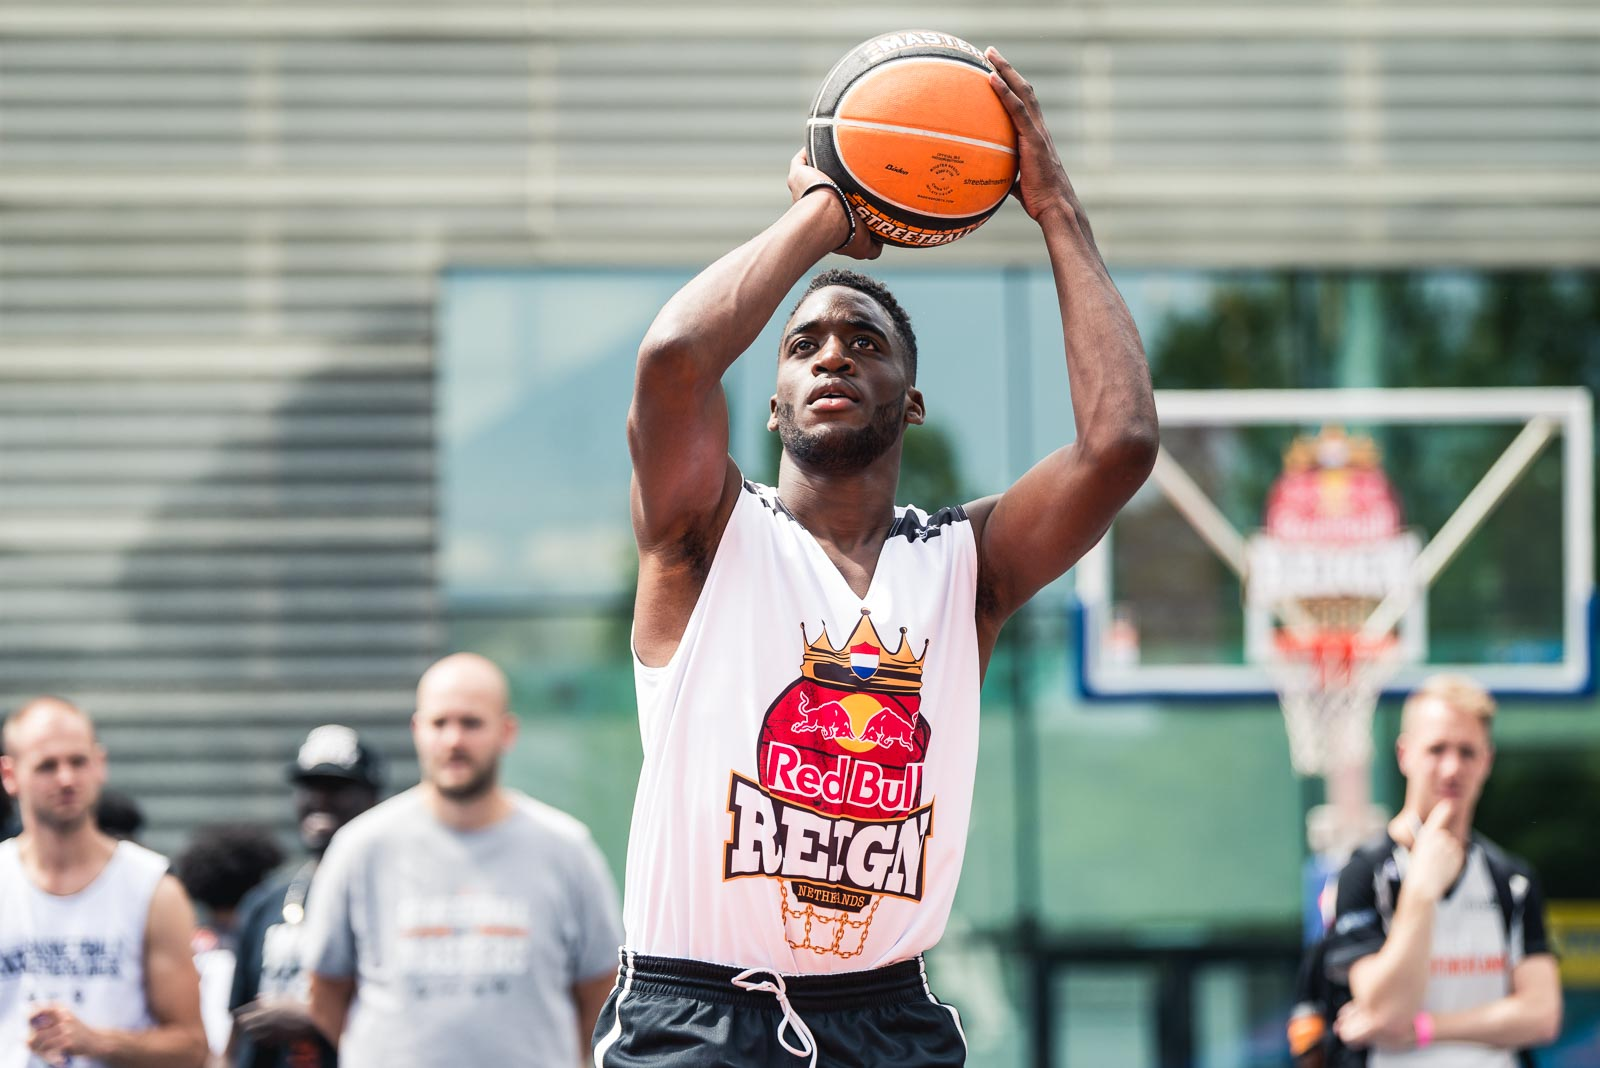 Basketball player taking a shot during Red Bull Reign